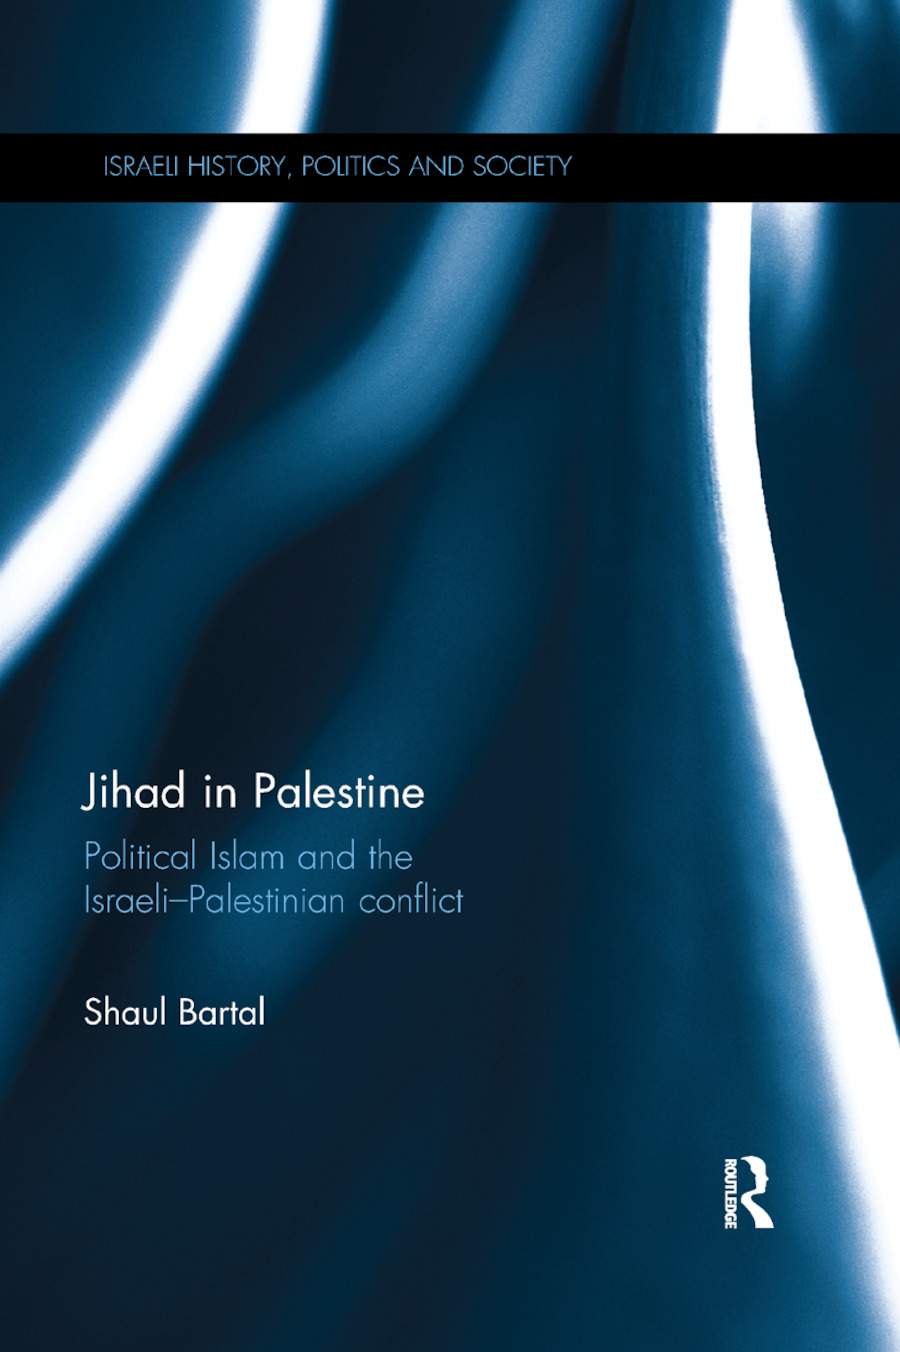 Jihad in Palestine: Political Islam and the Israeli-Palestinian Conflict book cover